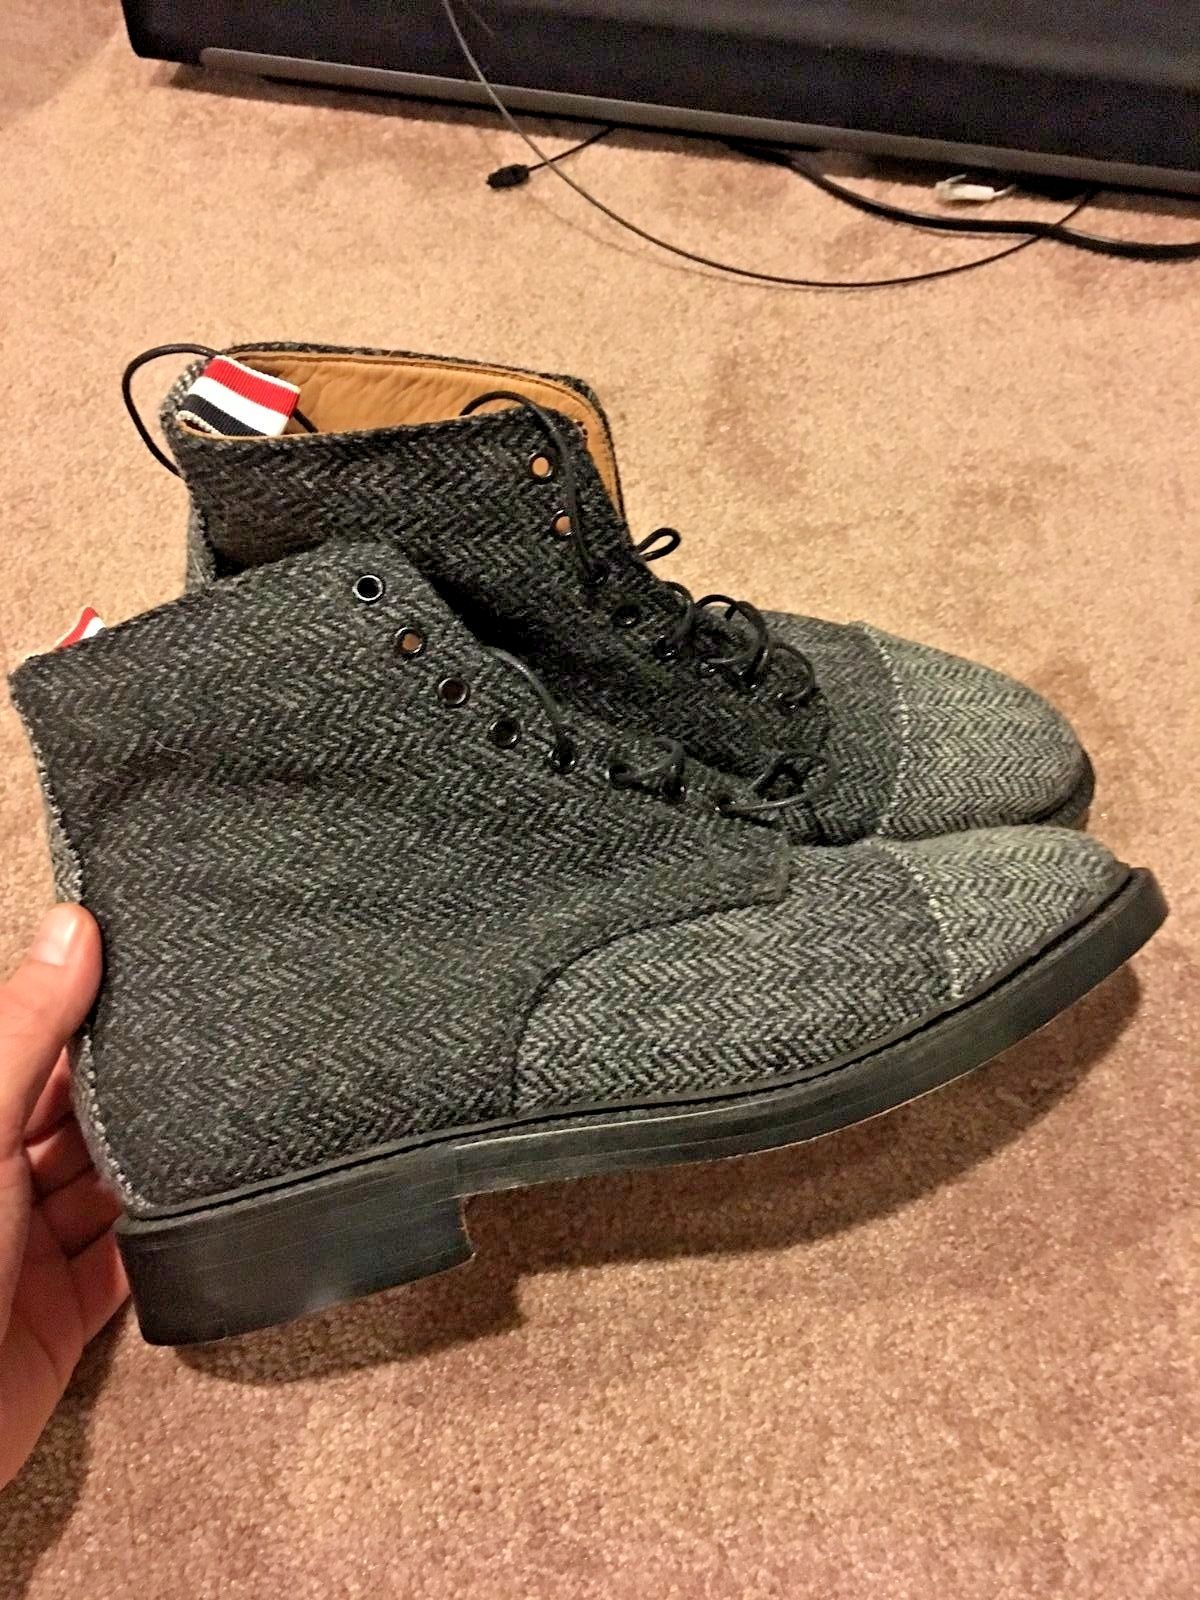 6d3d3217dbb Thom Browne Men's Gray Tweed Lace-Up Ankle Boot *new! in ...